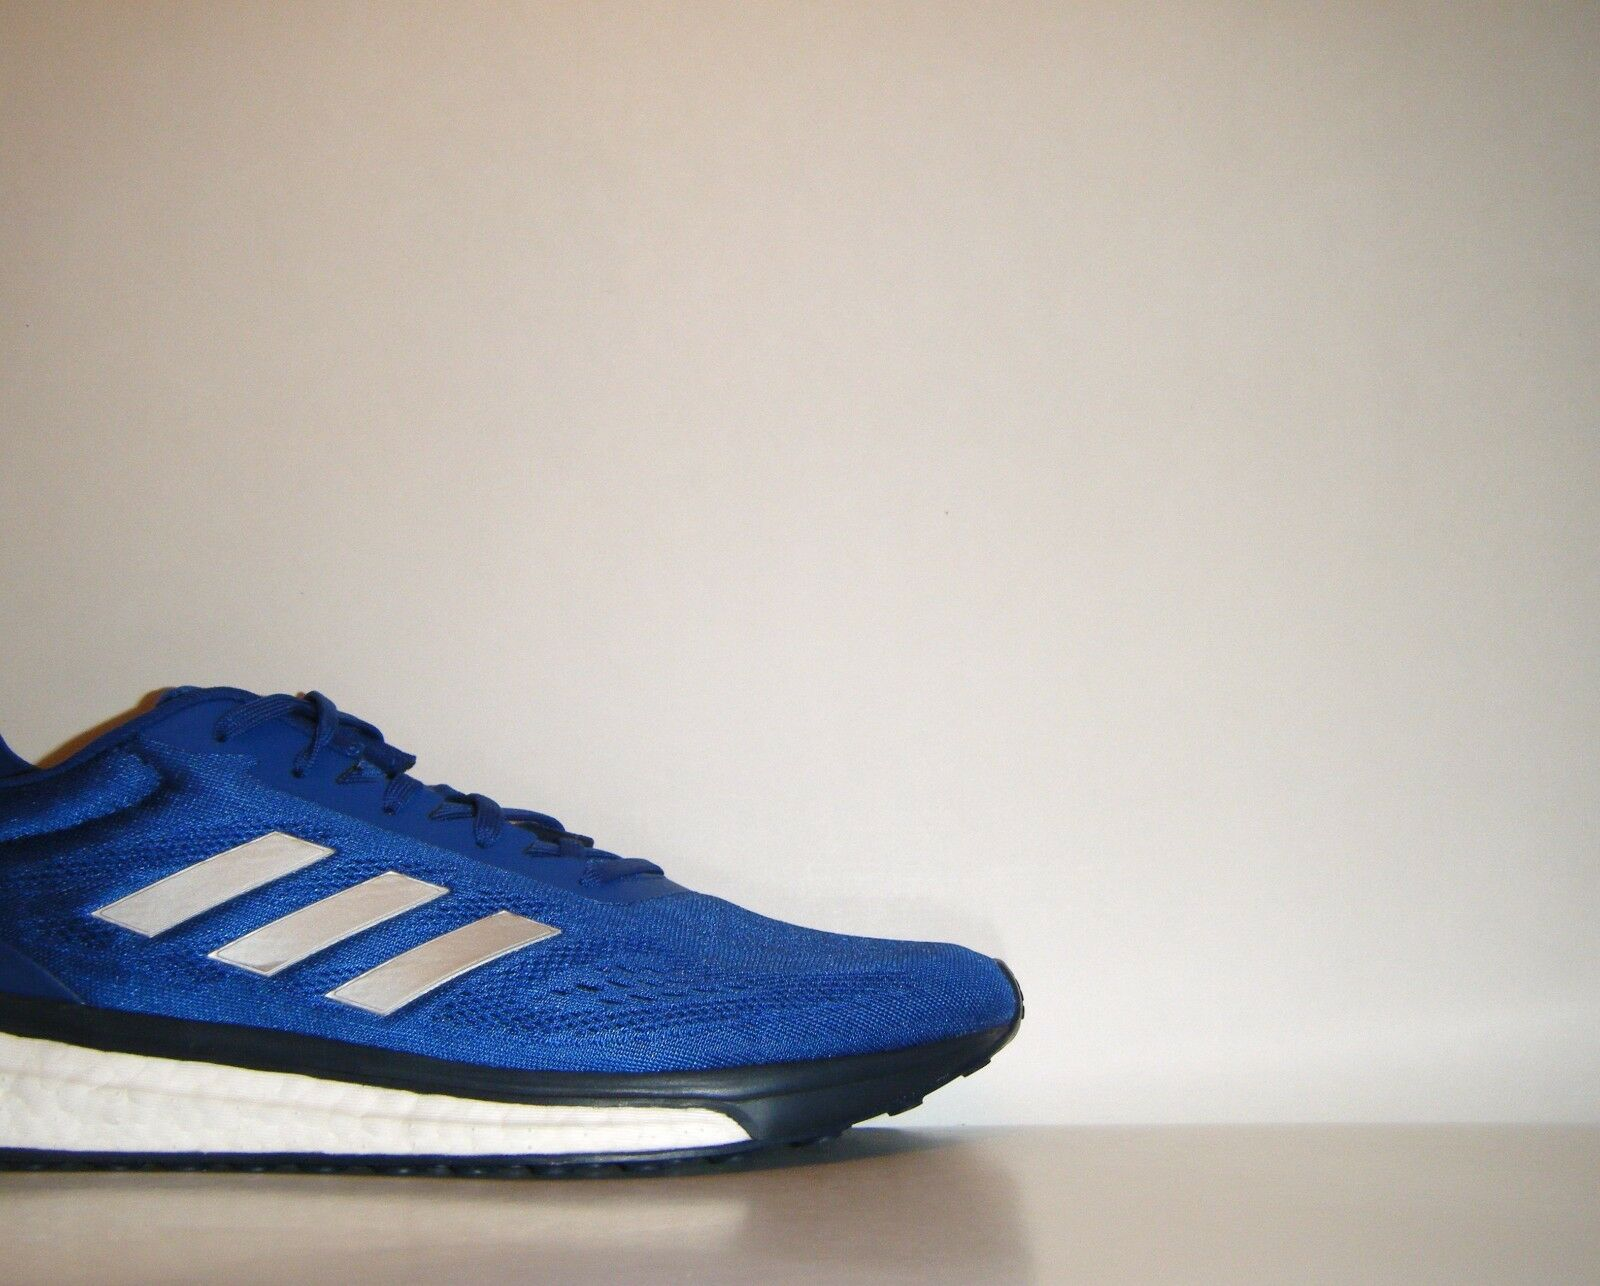 f62e7637a7d06 Adidas Originals Men s Adizero Ubersonic 3 Clay Tennis shoes - Choose SZ  color